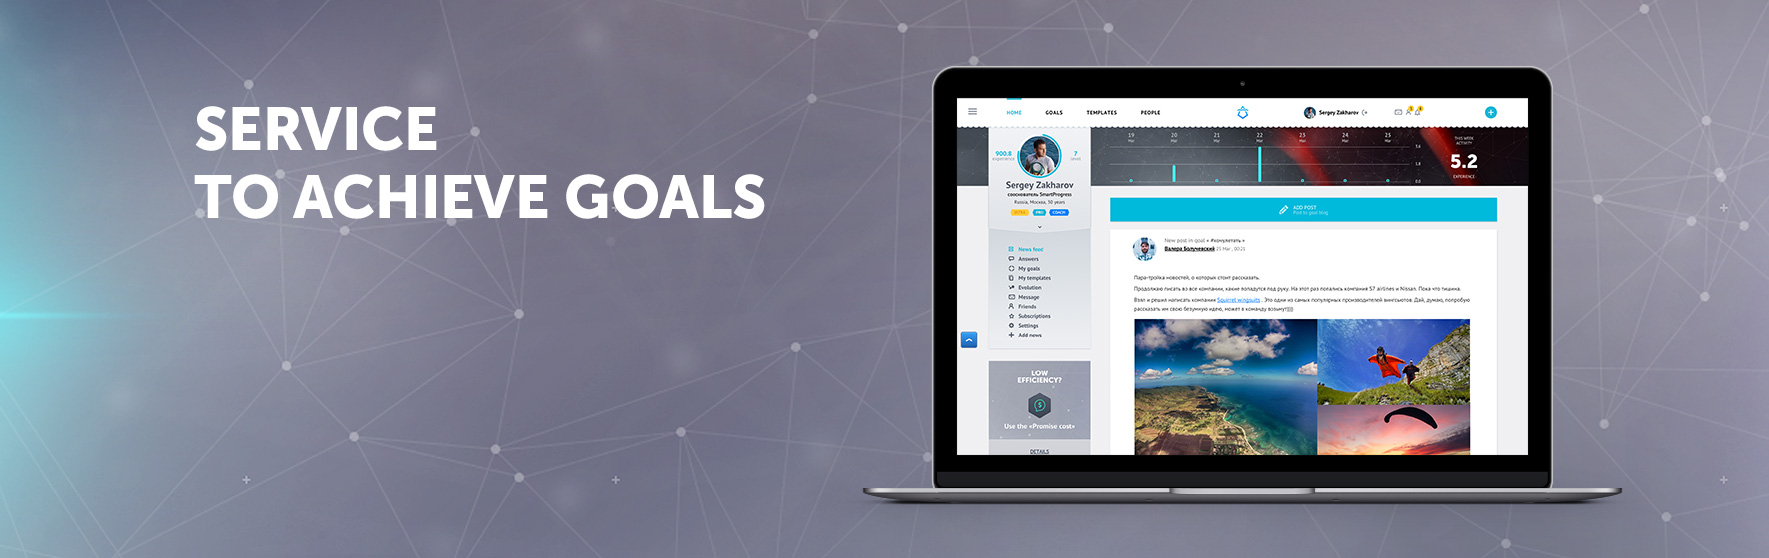 SmartProgress - Service to achieve goals